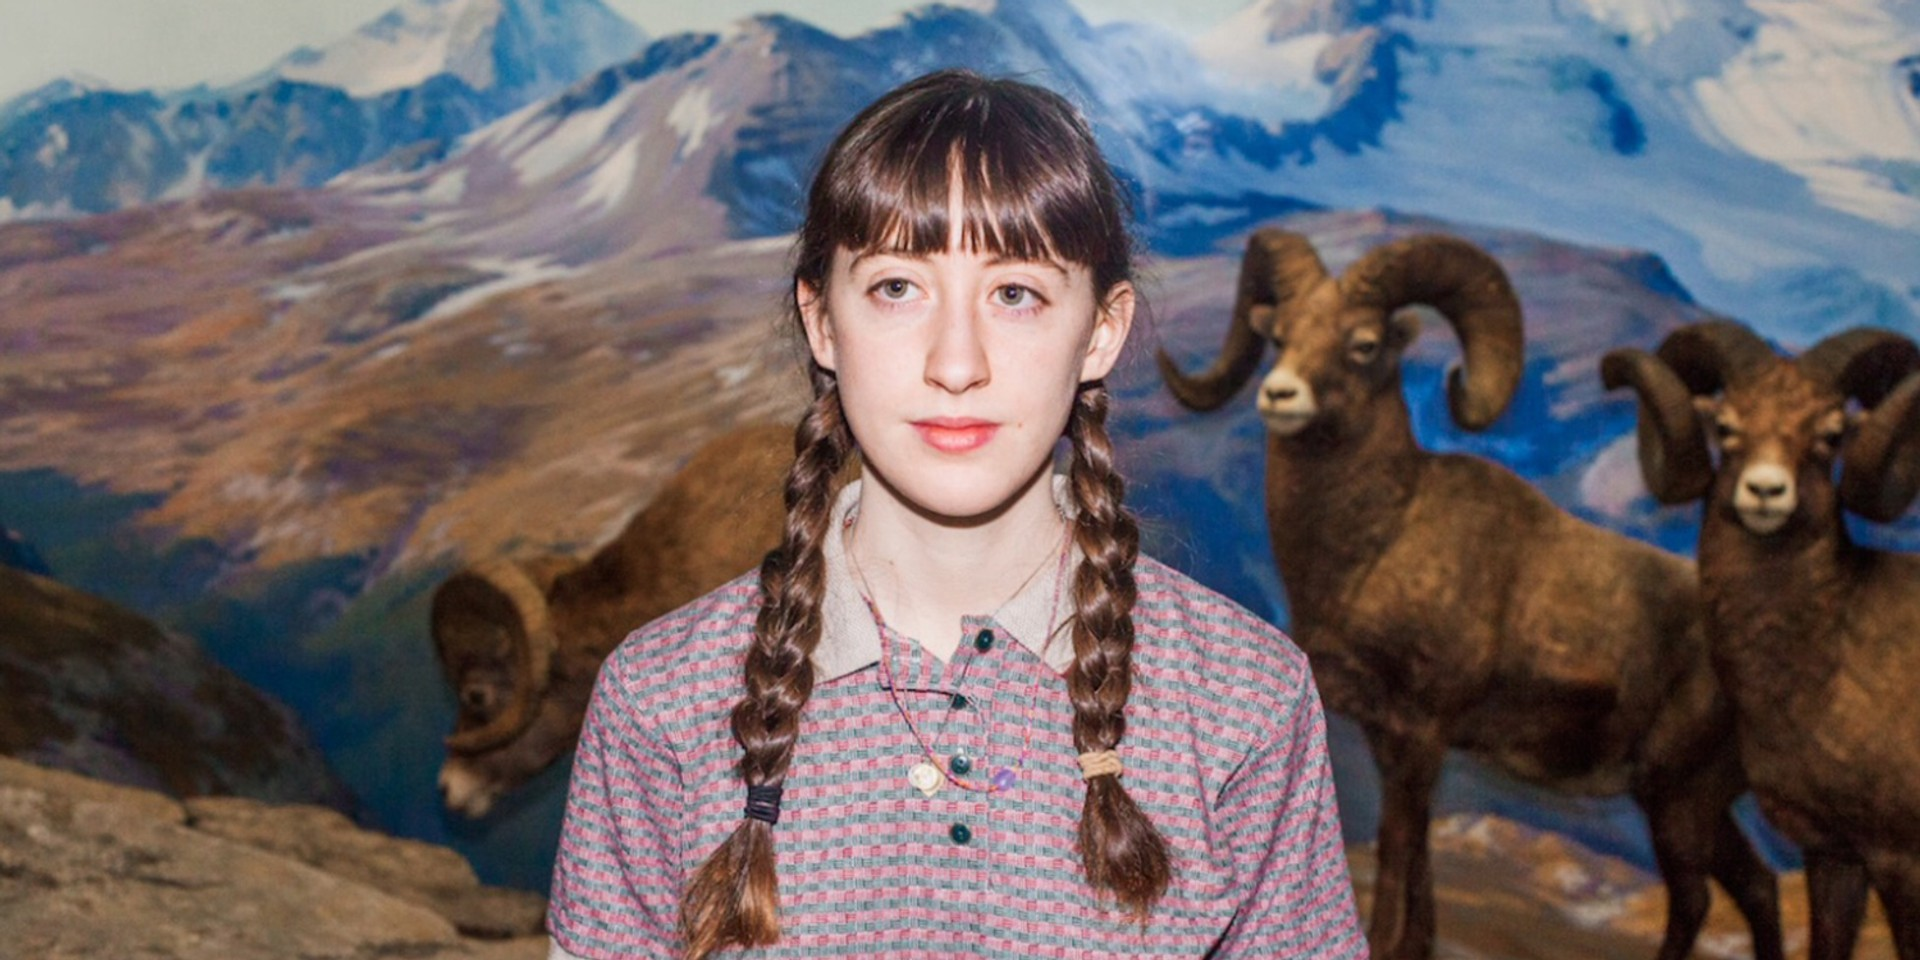 ALBUM REVIEW: Frankie Cosmos - Next Thing